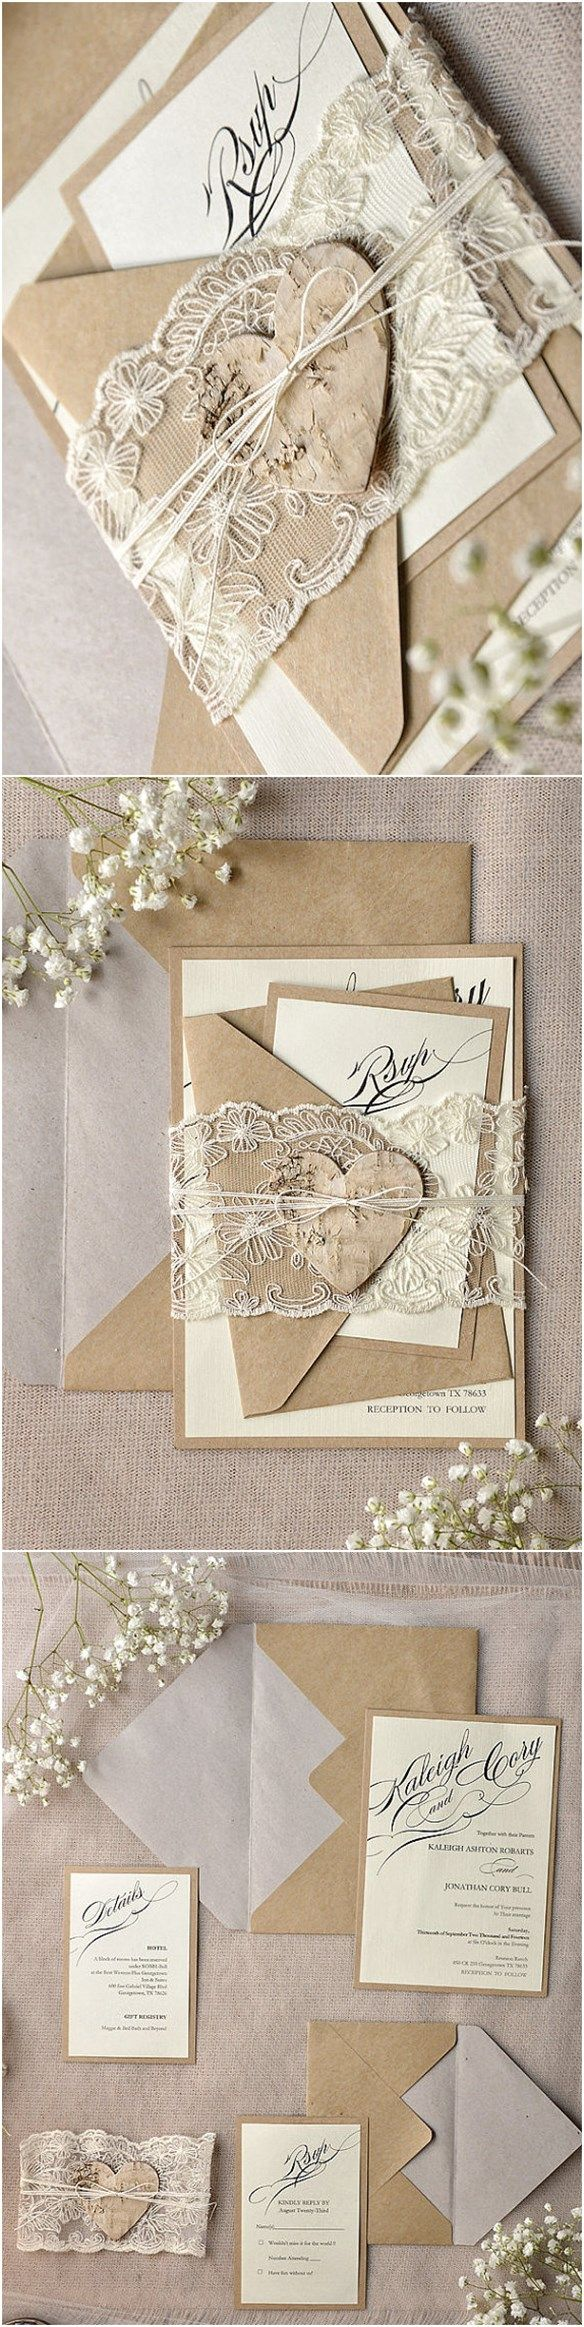 rustic calligraphy recycled lace wedding invitation kits so pretty - Rustic Wedding Invitation Kits